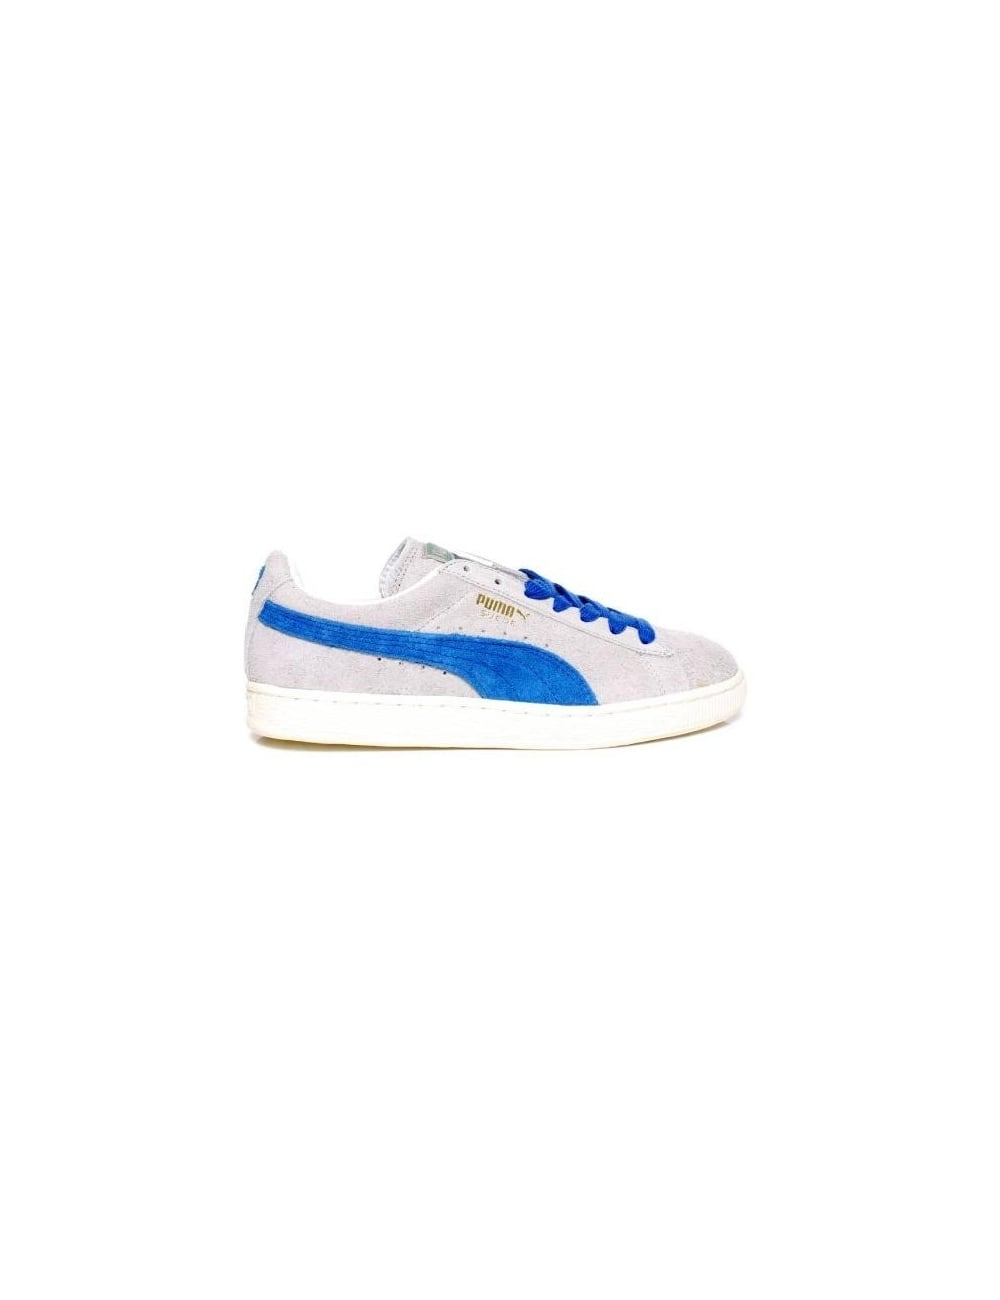 los angeles a83b6 6e6e4 Suede Vintage - Grey/Royal